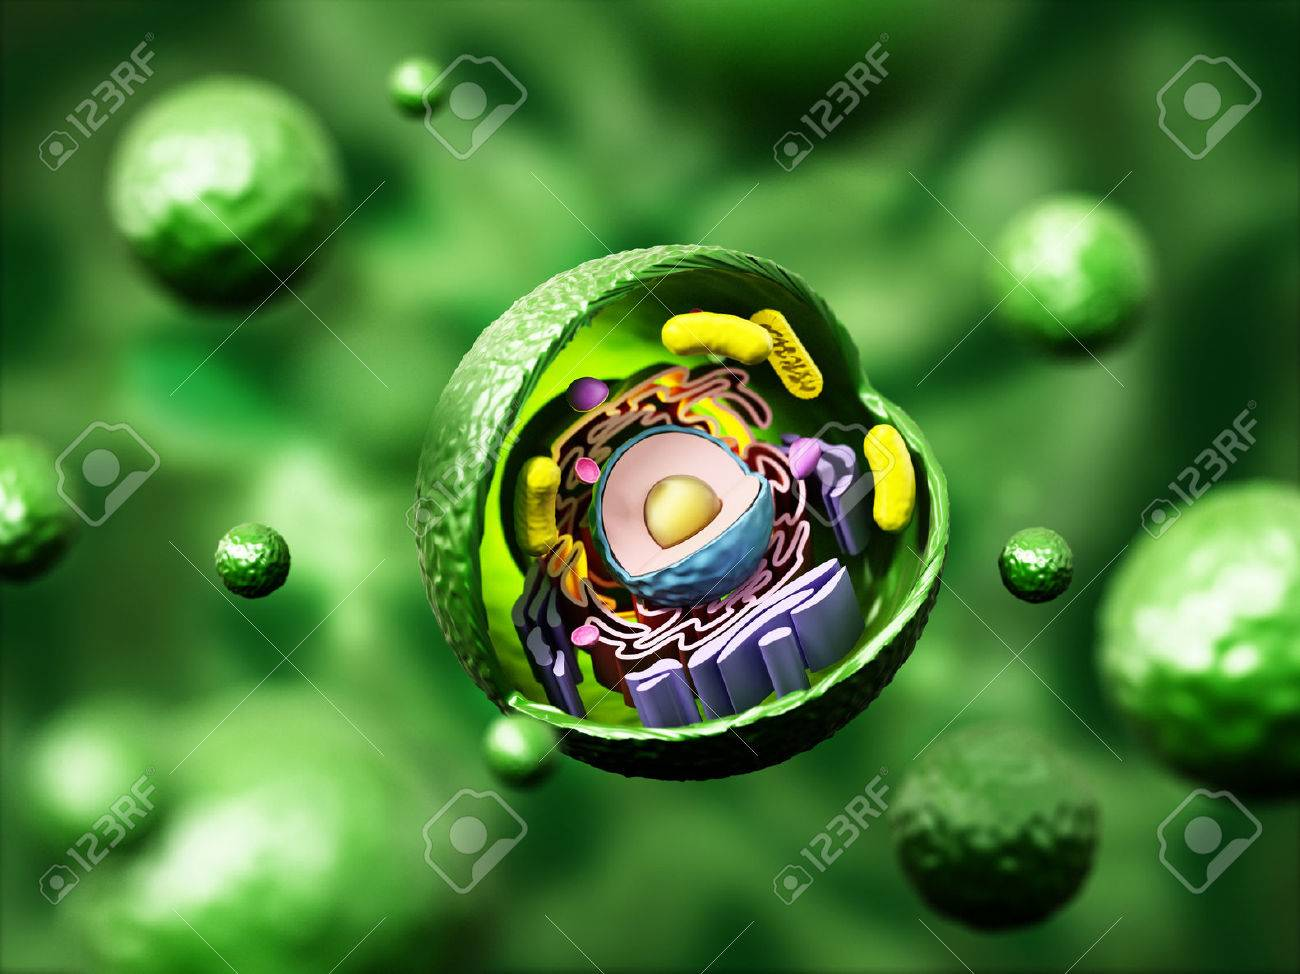 hight resolution of animal cell anatomy on green background 3d illustration stock illustration 66313216